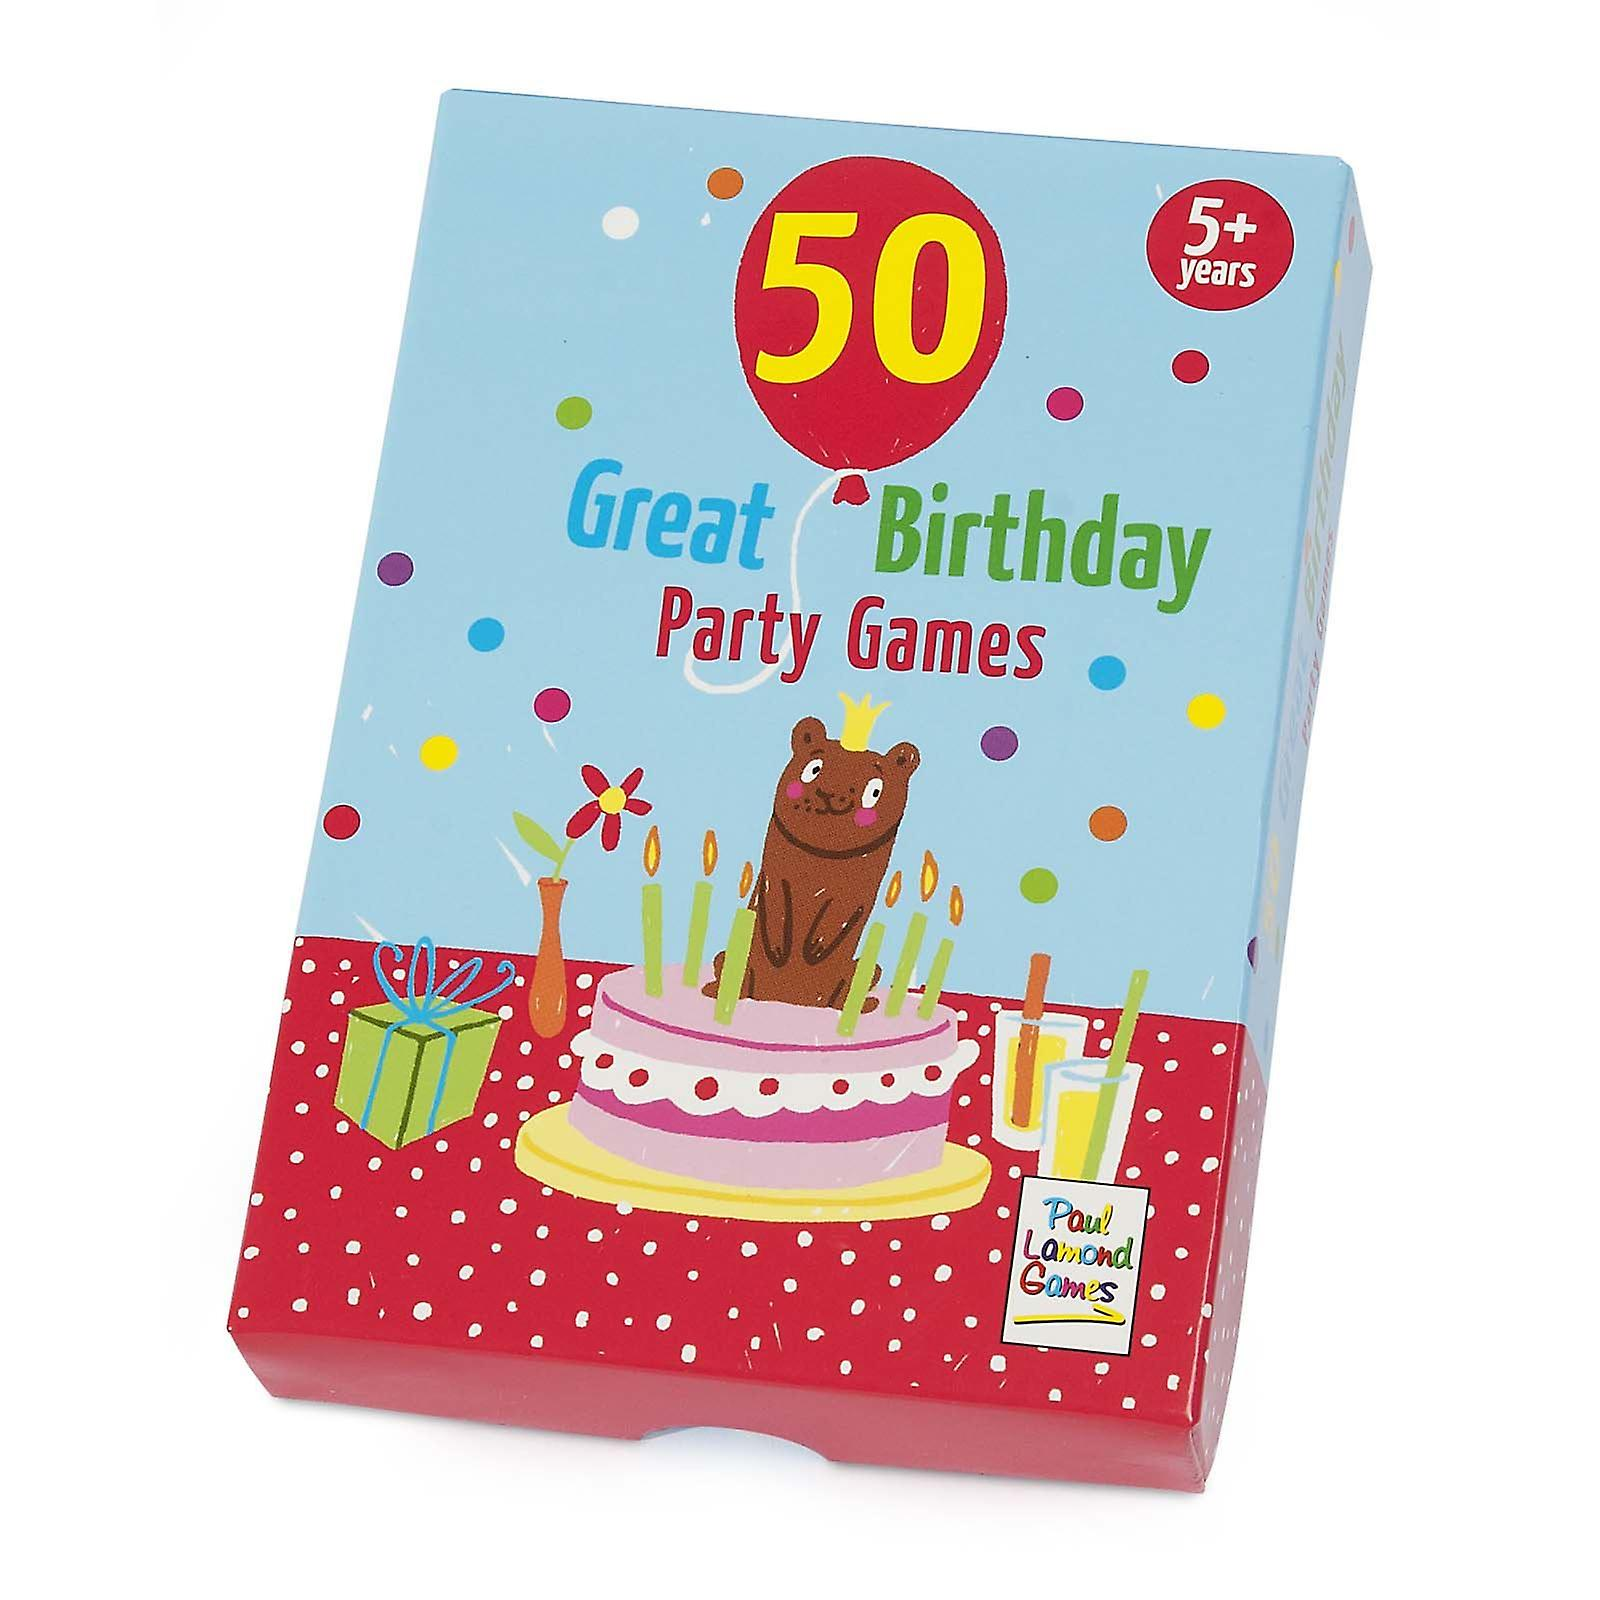 50 Great Birthday Party Games Ideas Cards Age 5